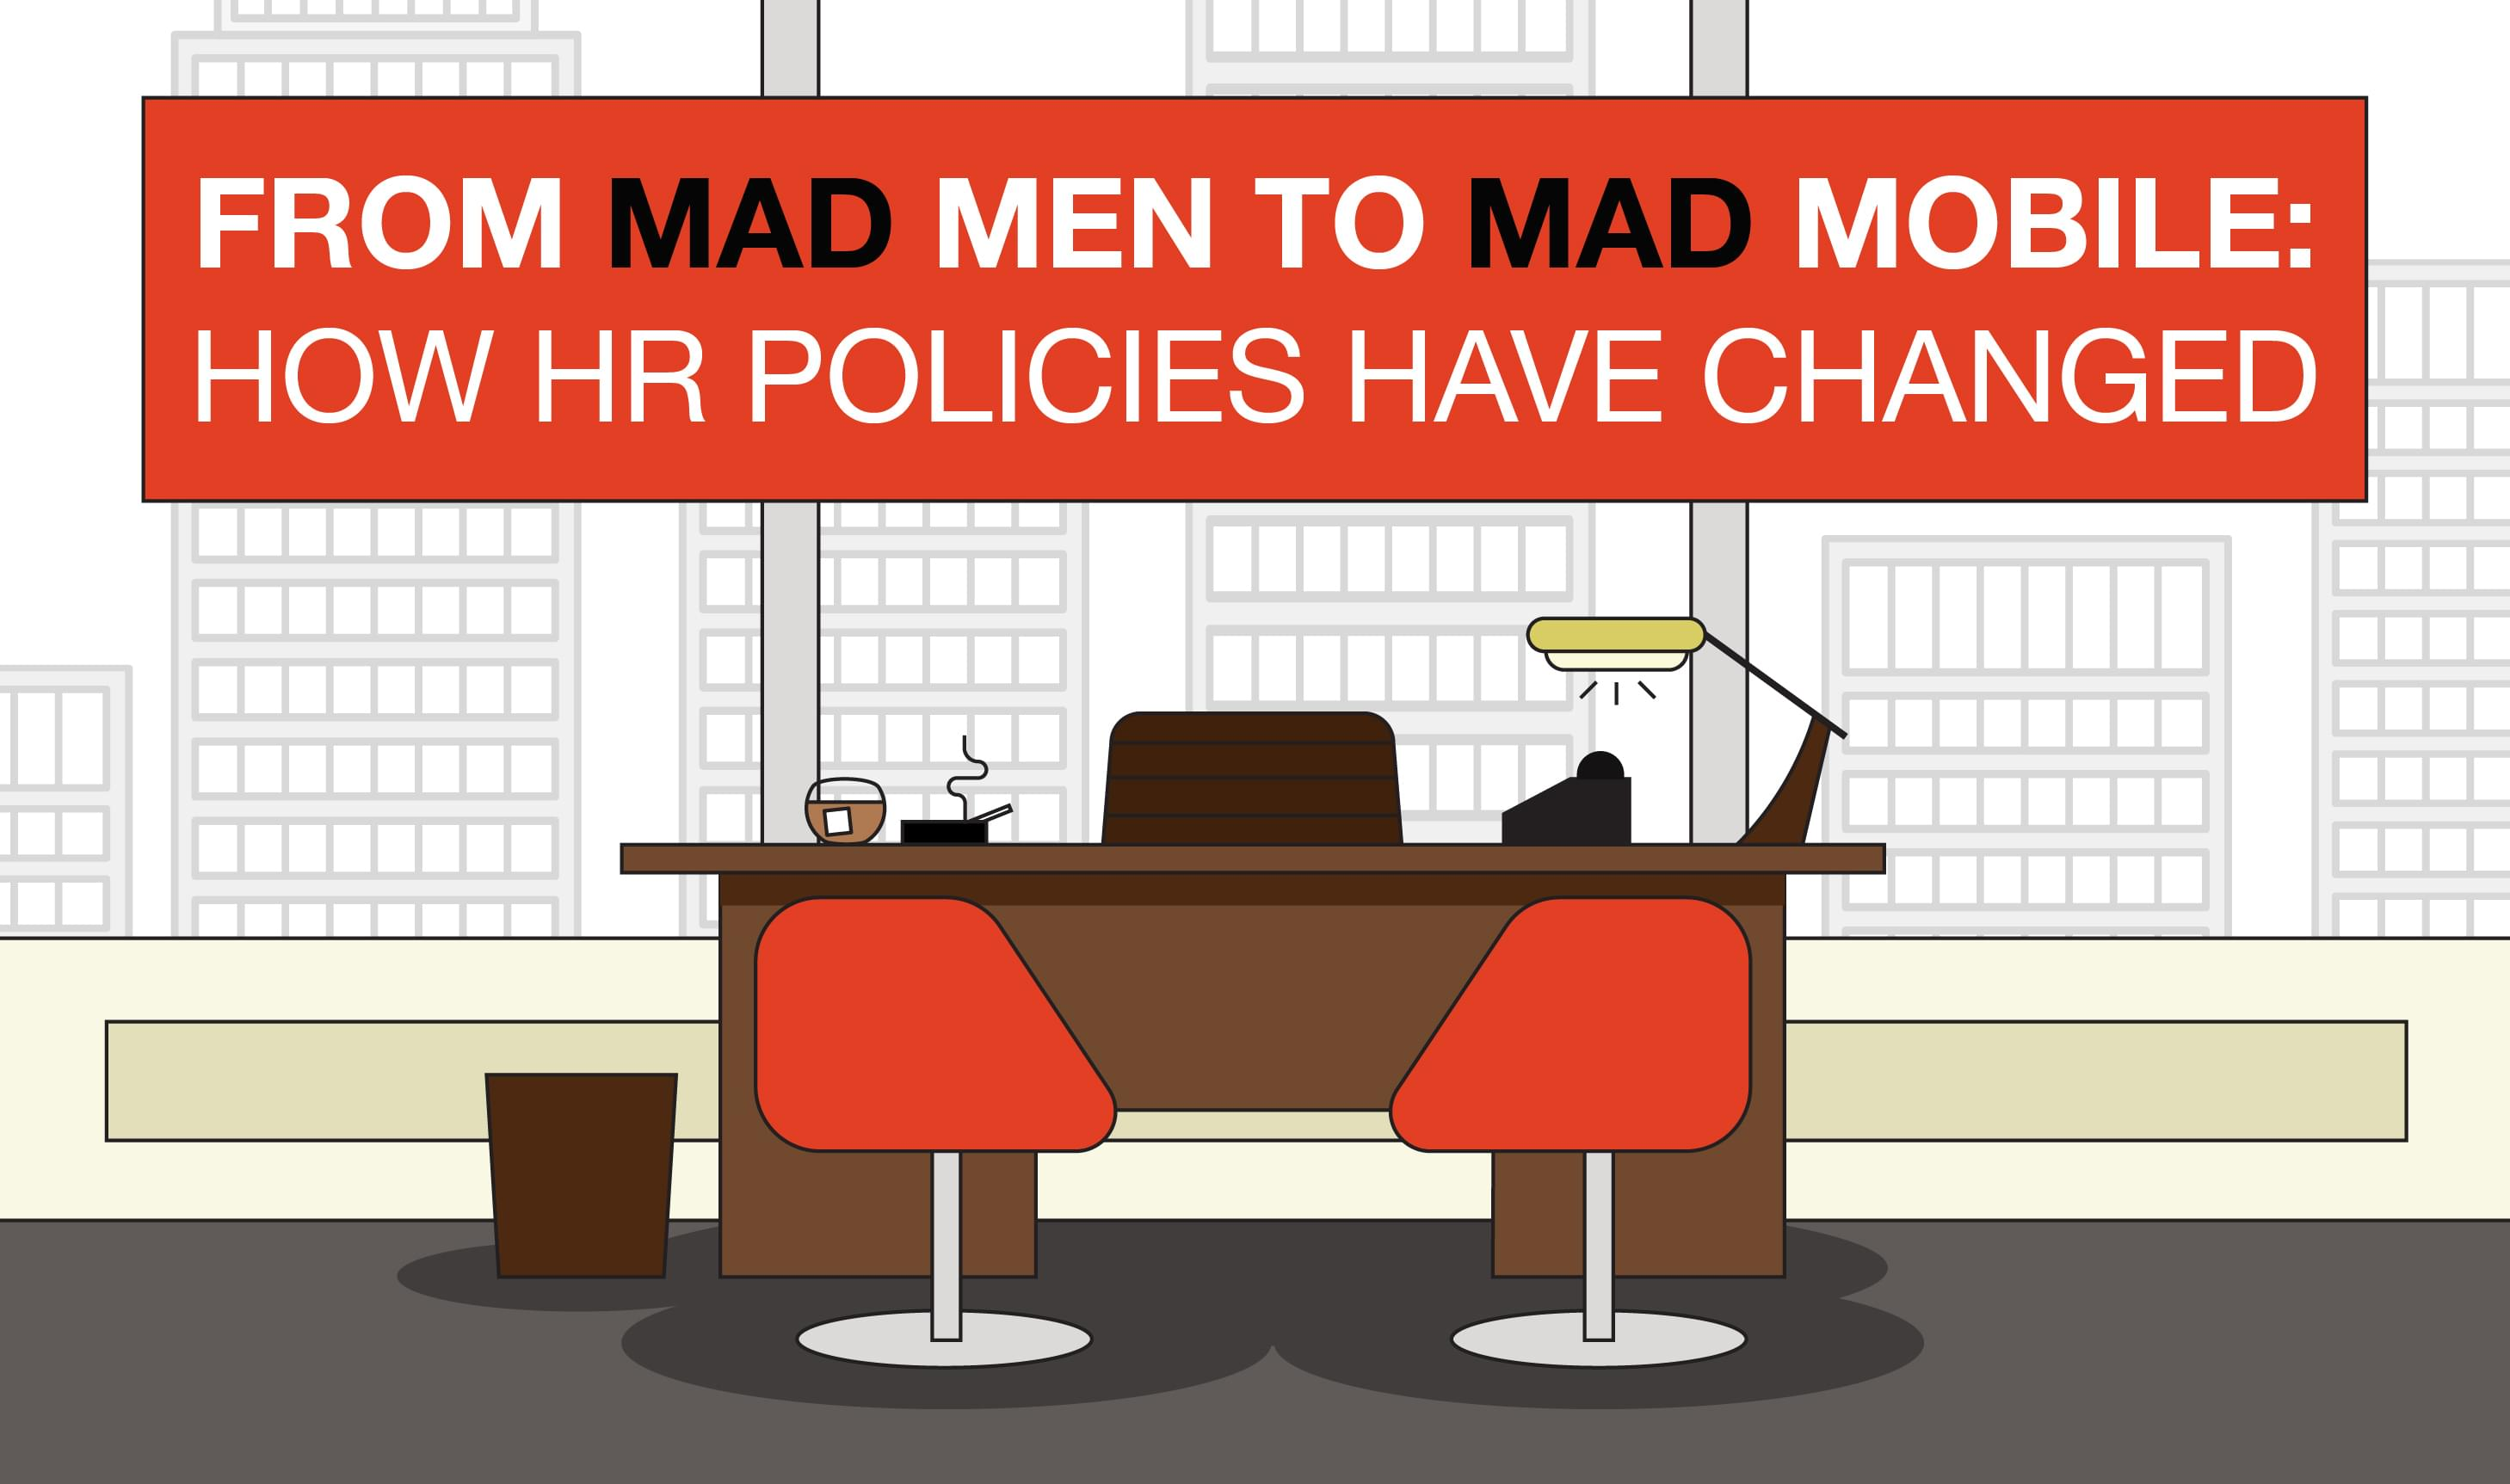 From Mad Men to Mad Mobile: How HR Has Changed